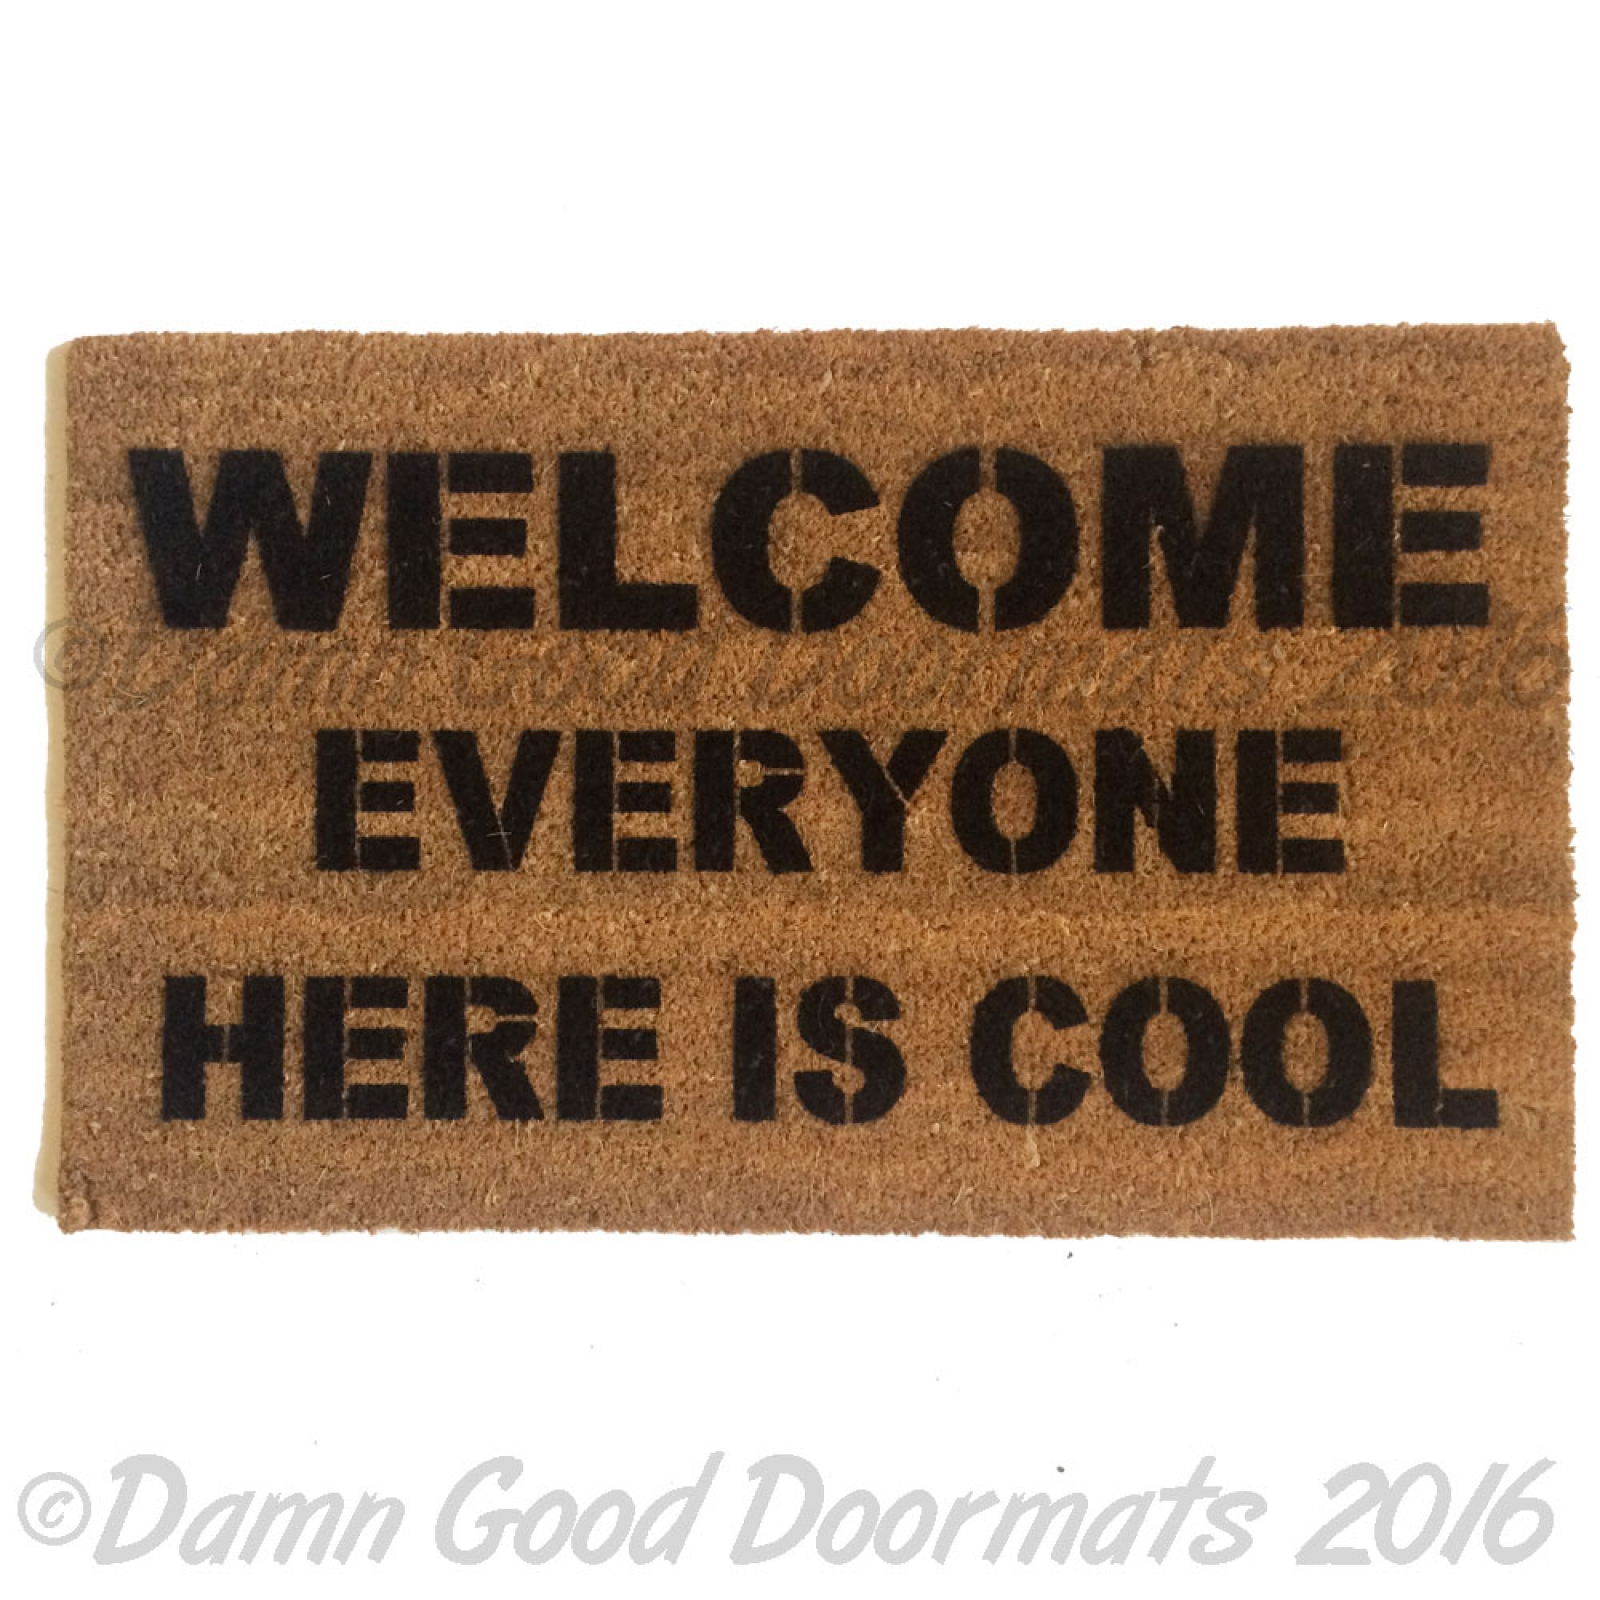 Welcome Everyone Here Is Cool Mantra Housewarming Funny